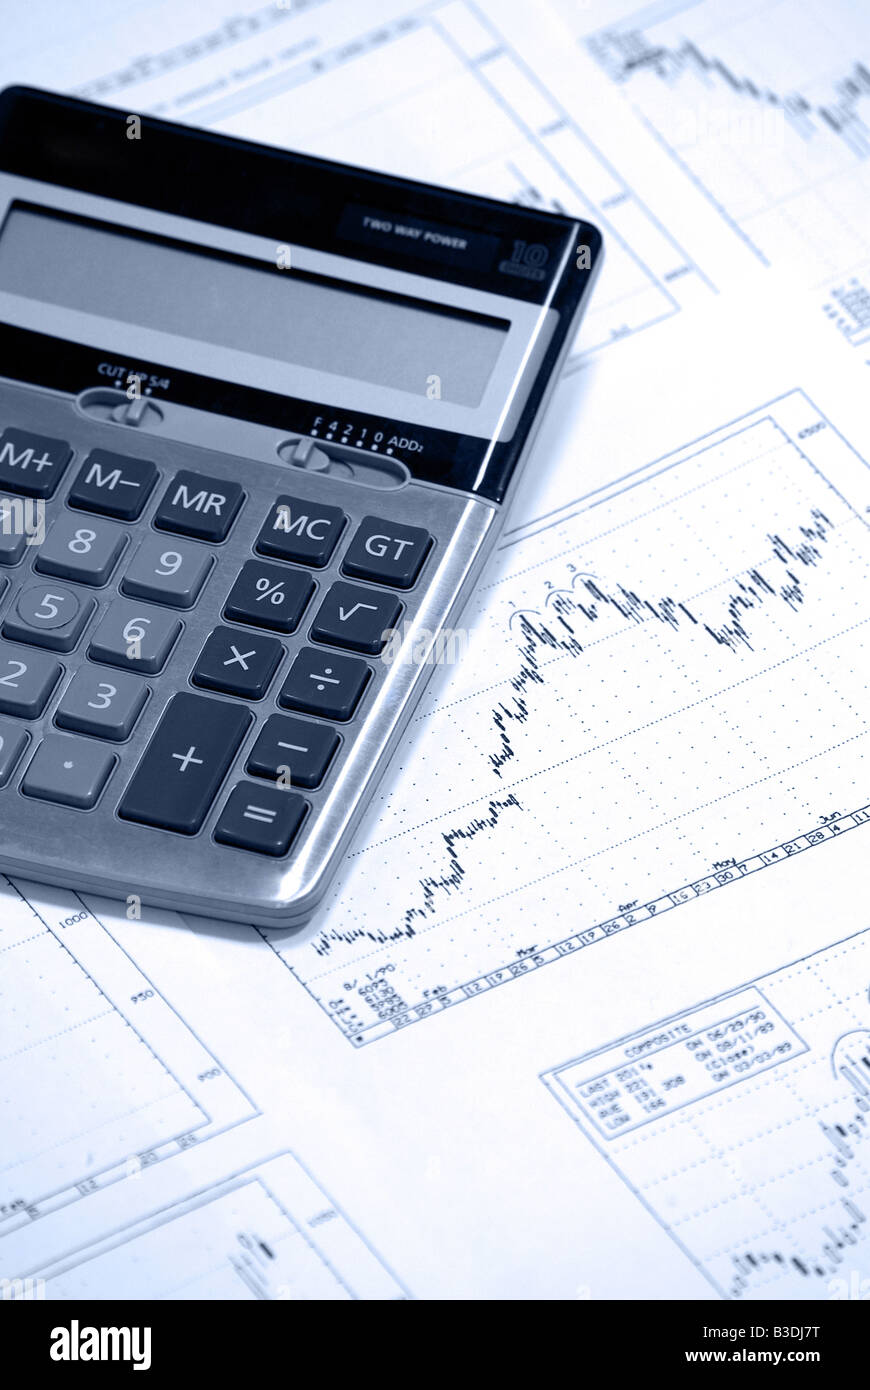 Calculator laying on stock market, market graph, graphs, chart, charts Stock Photo